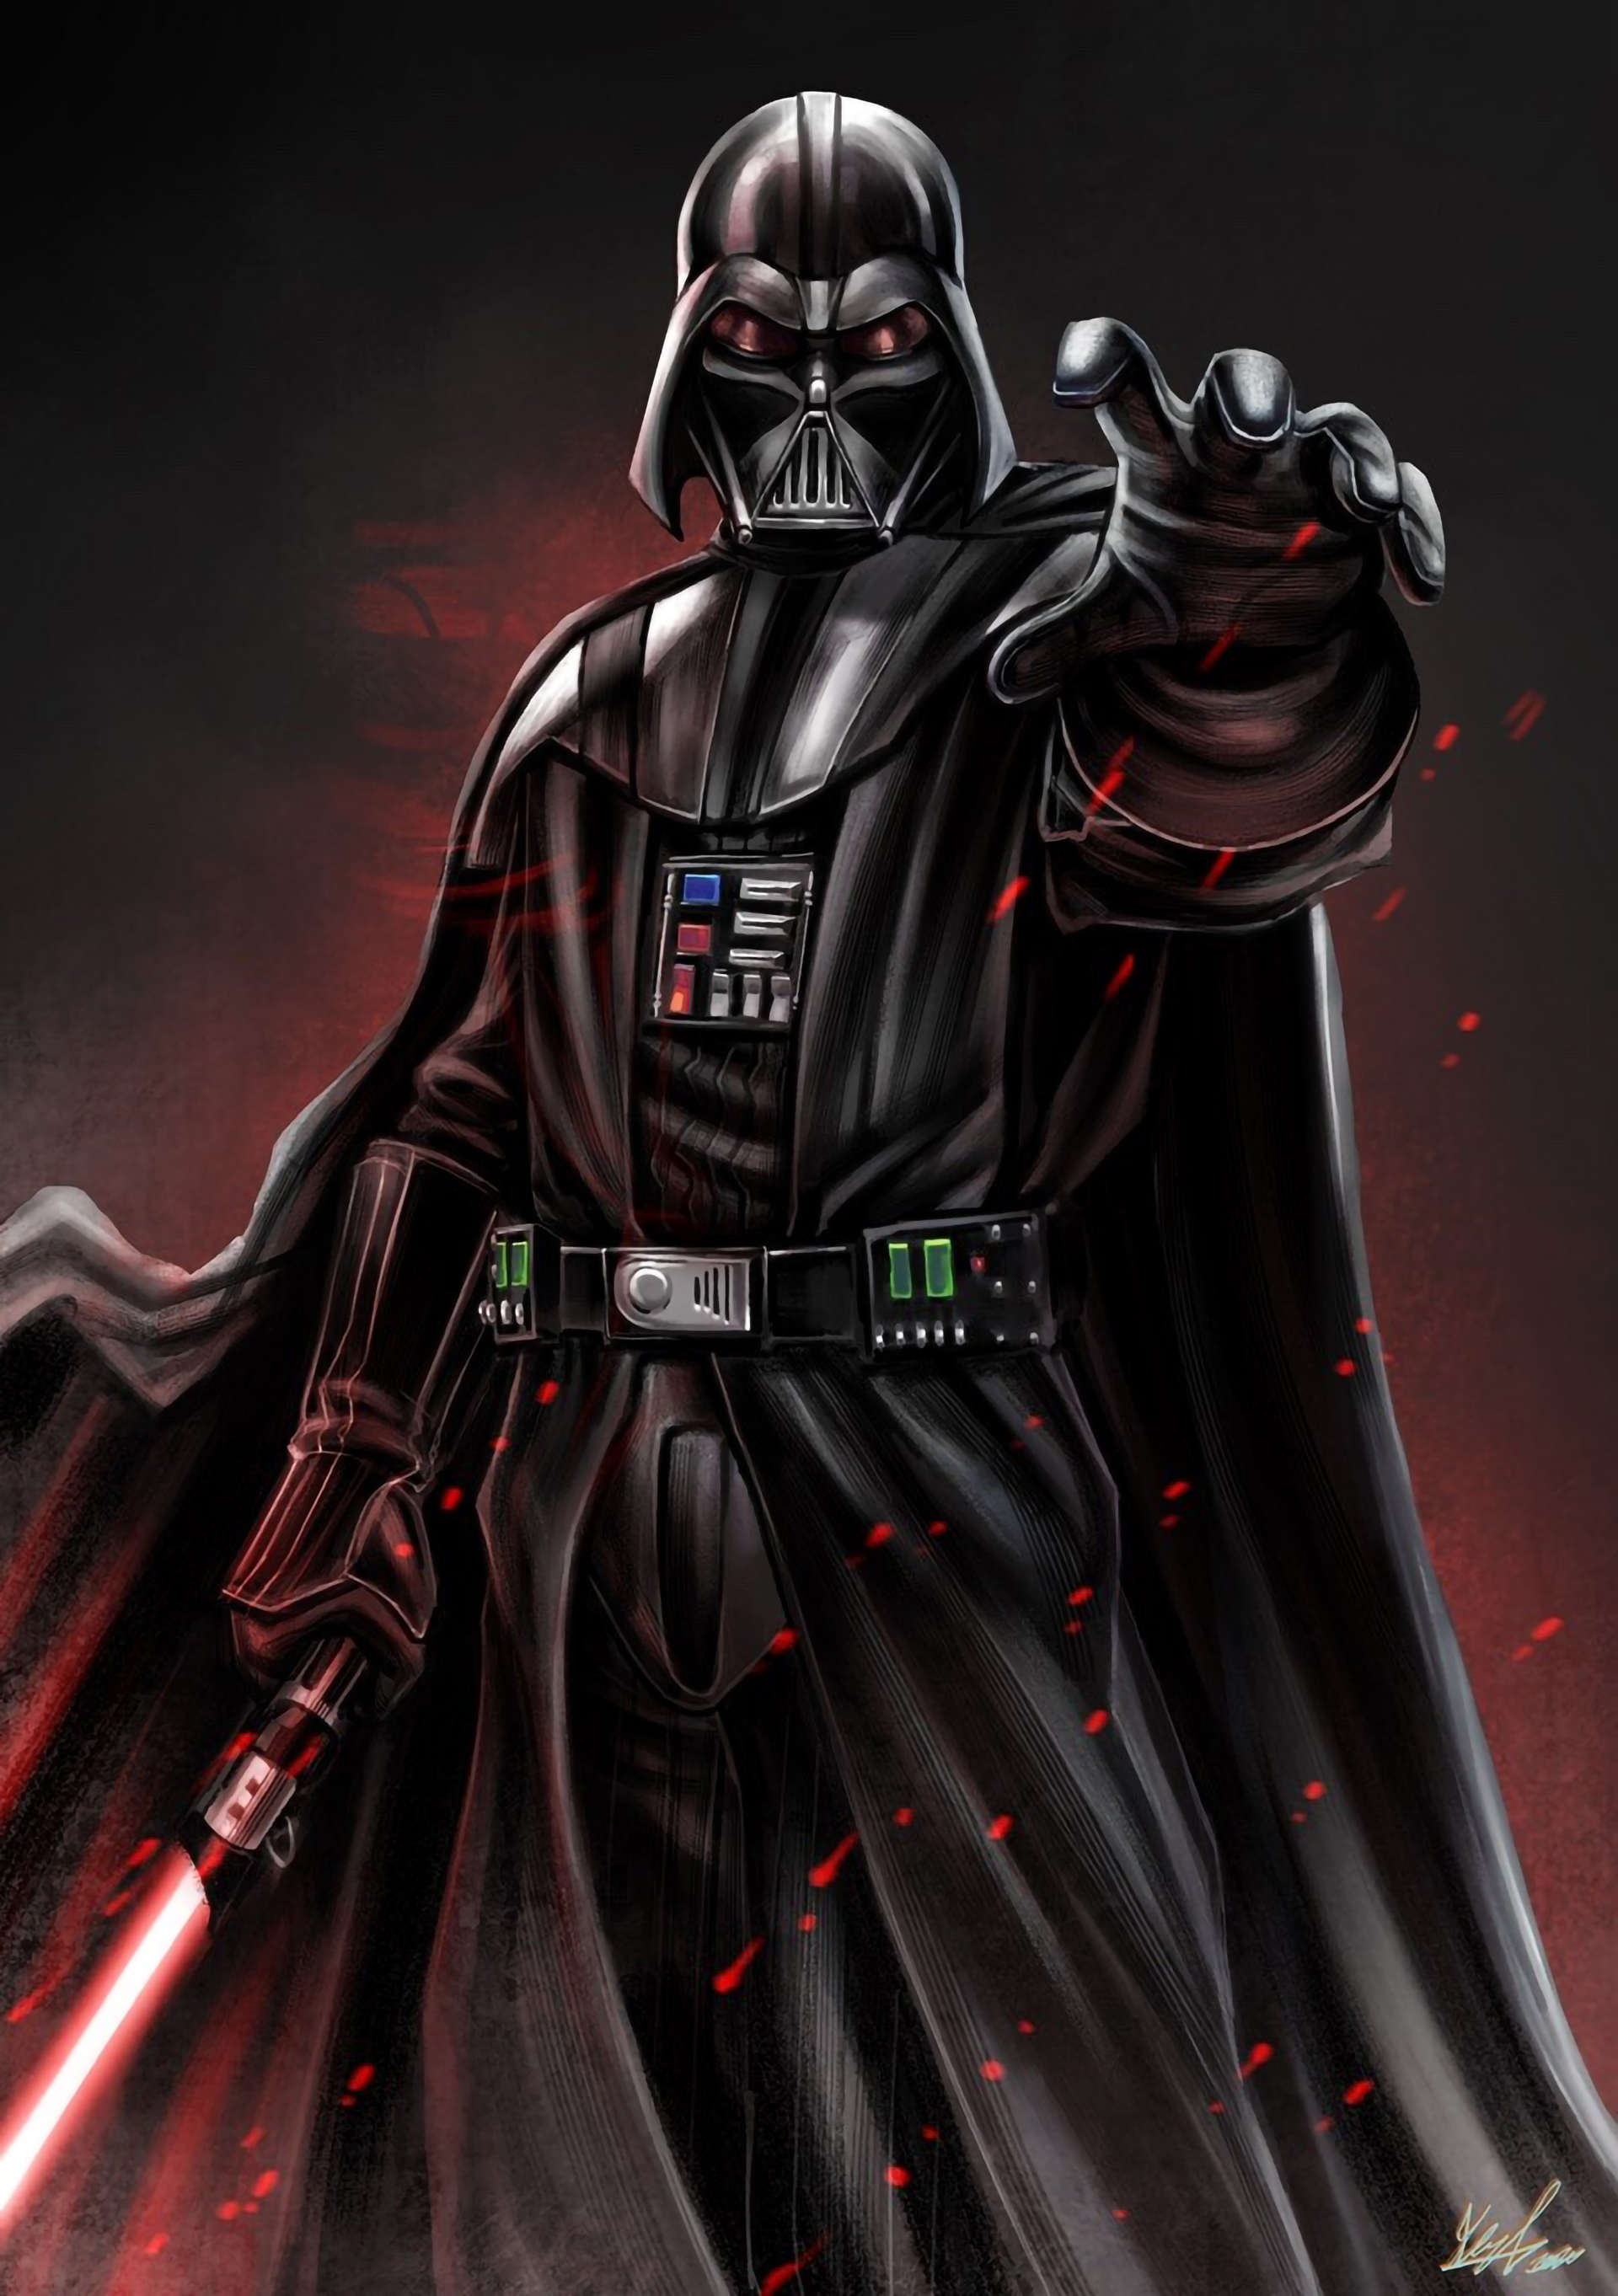 480x854 Darth Vader Star Wars 2021 Android One Mobile Wallpaper Hd Movies 4k Wallpapers Images Photos And Background